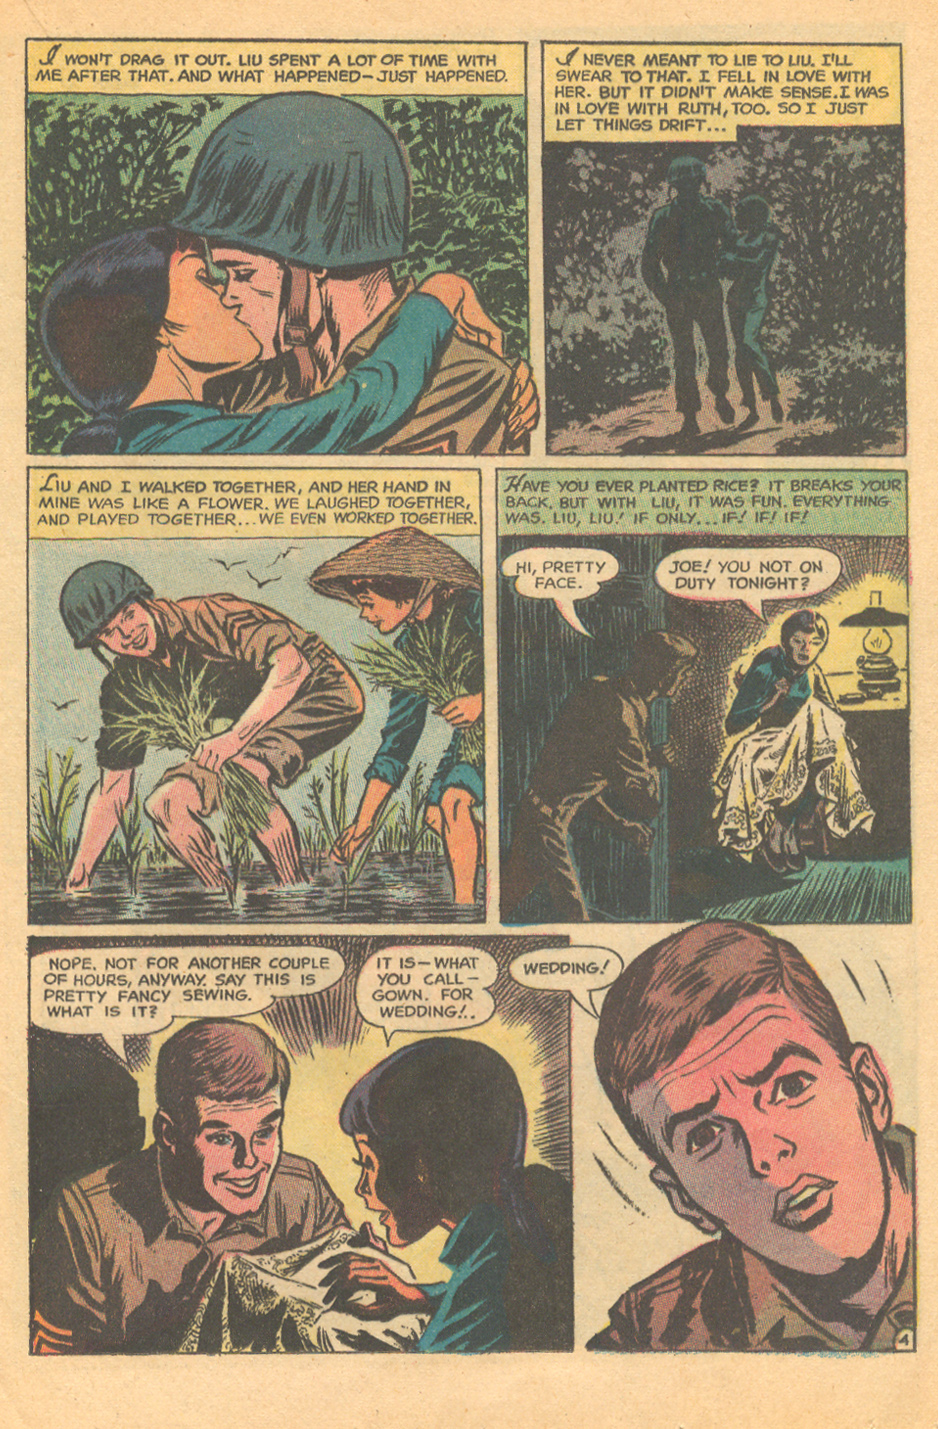 Vietnam war story romance comic book DC Comics